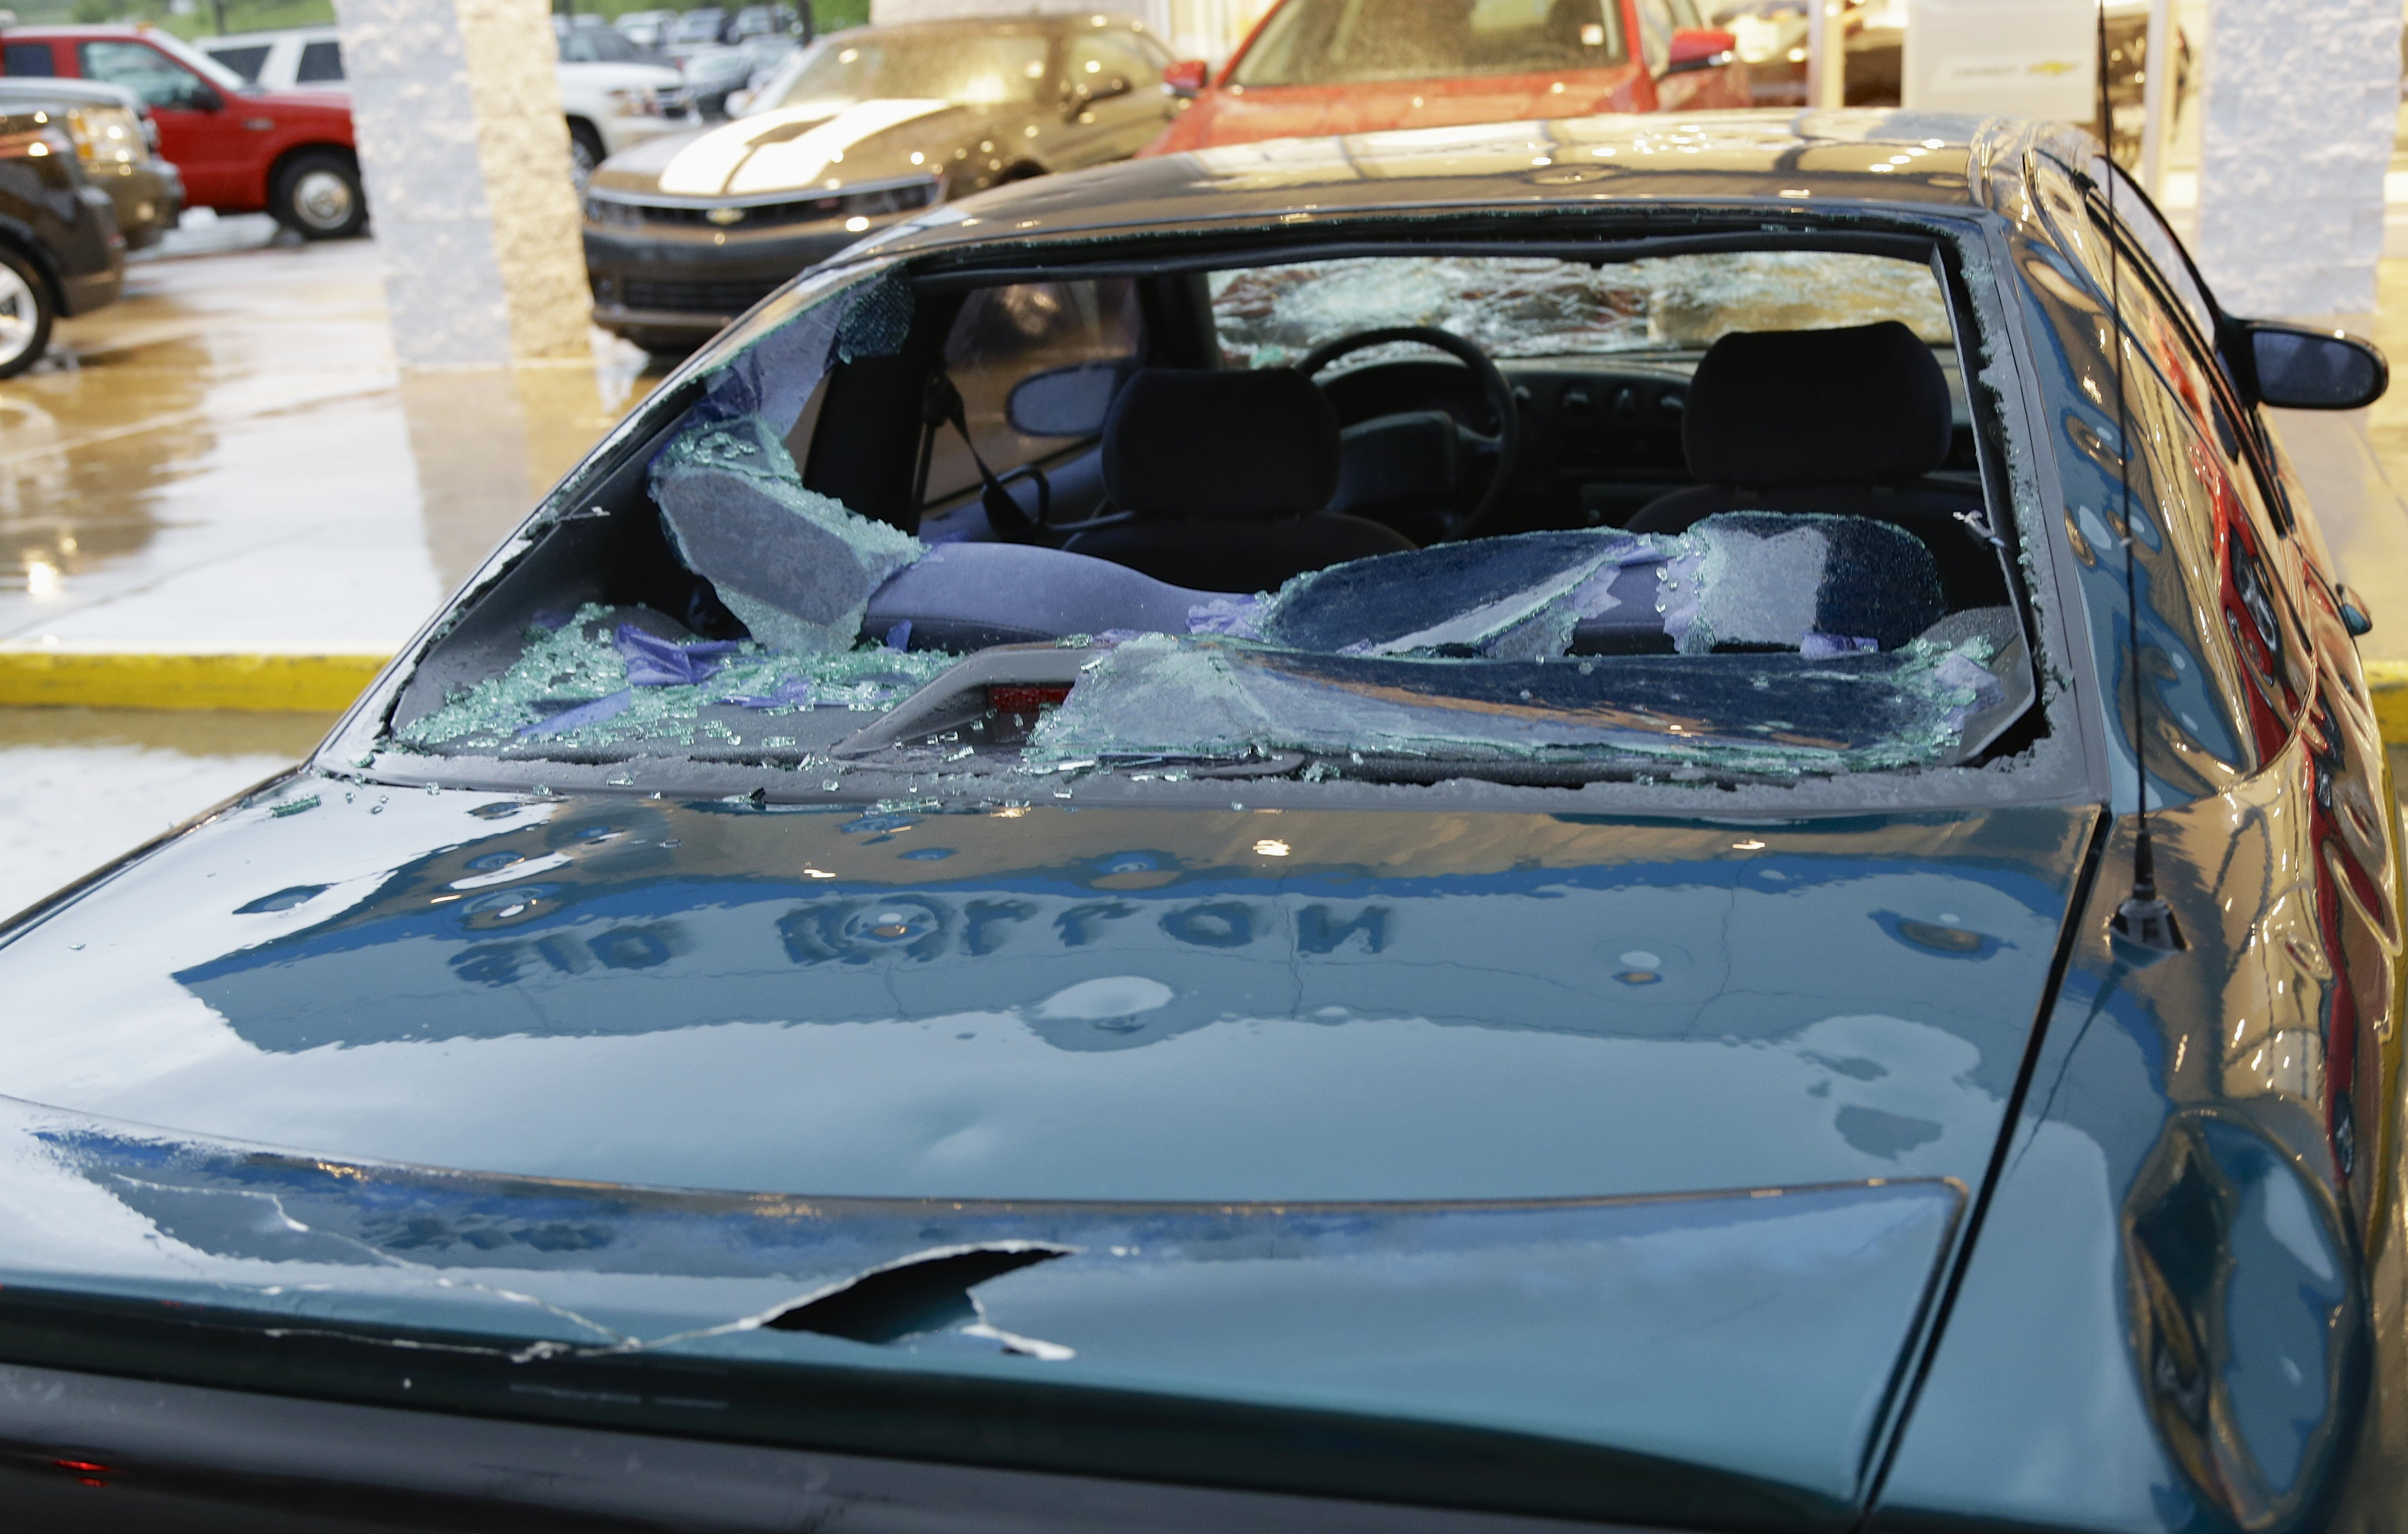 Hail Damaged Cars for Sale Near Me Best Of Video Severe Storms Spark A Region Of Car Hail Sales